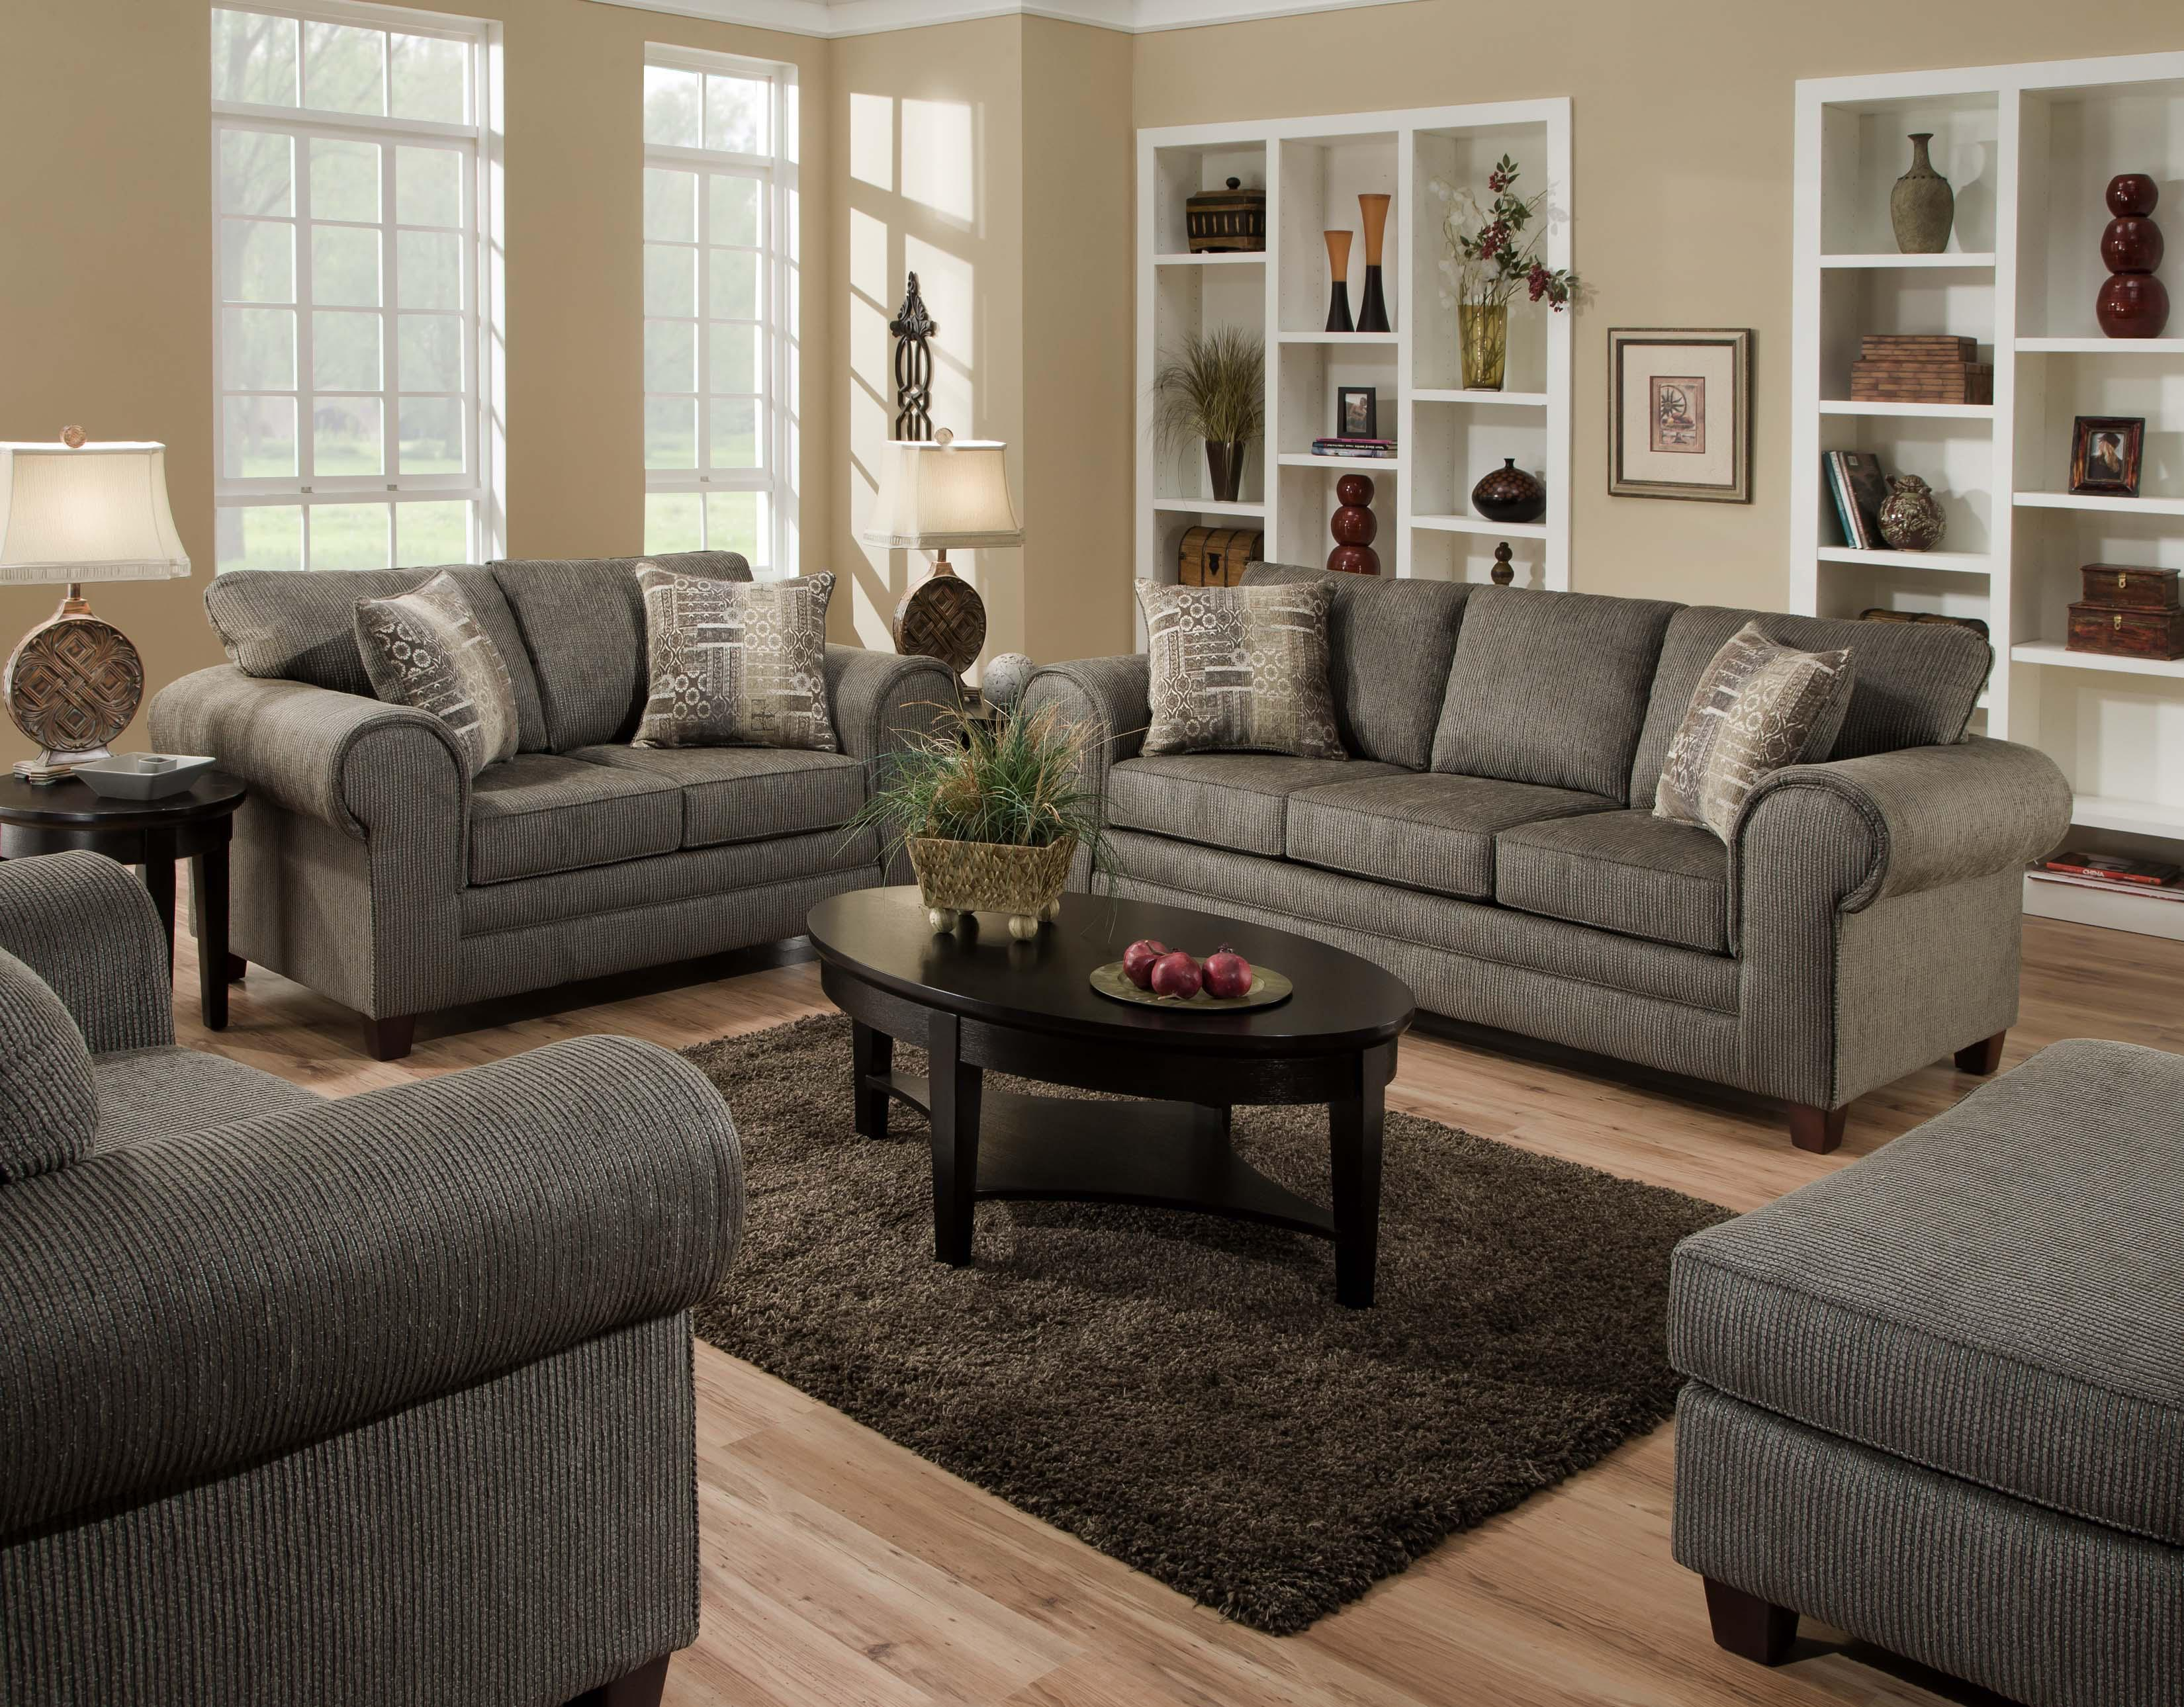 Living Room Sofas Sets 3750 Stationary Living Room Group By American Furniture At Darvin Furniture